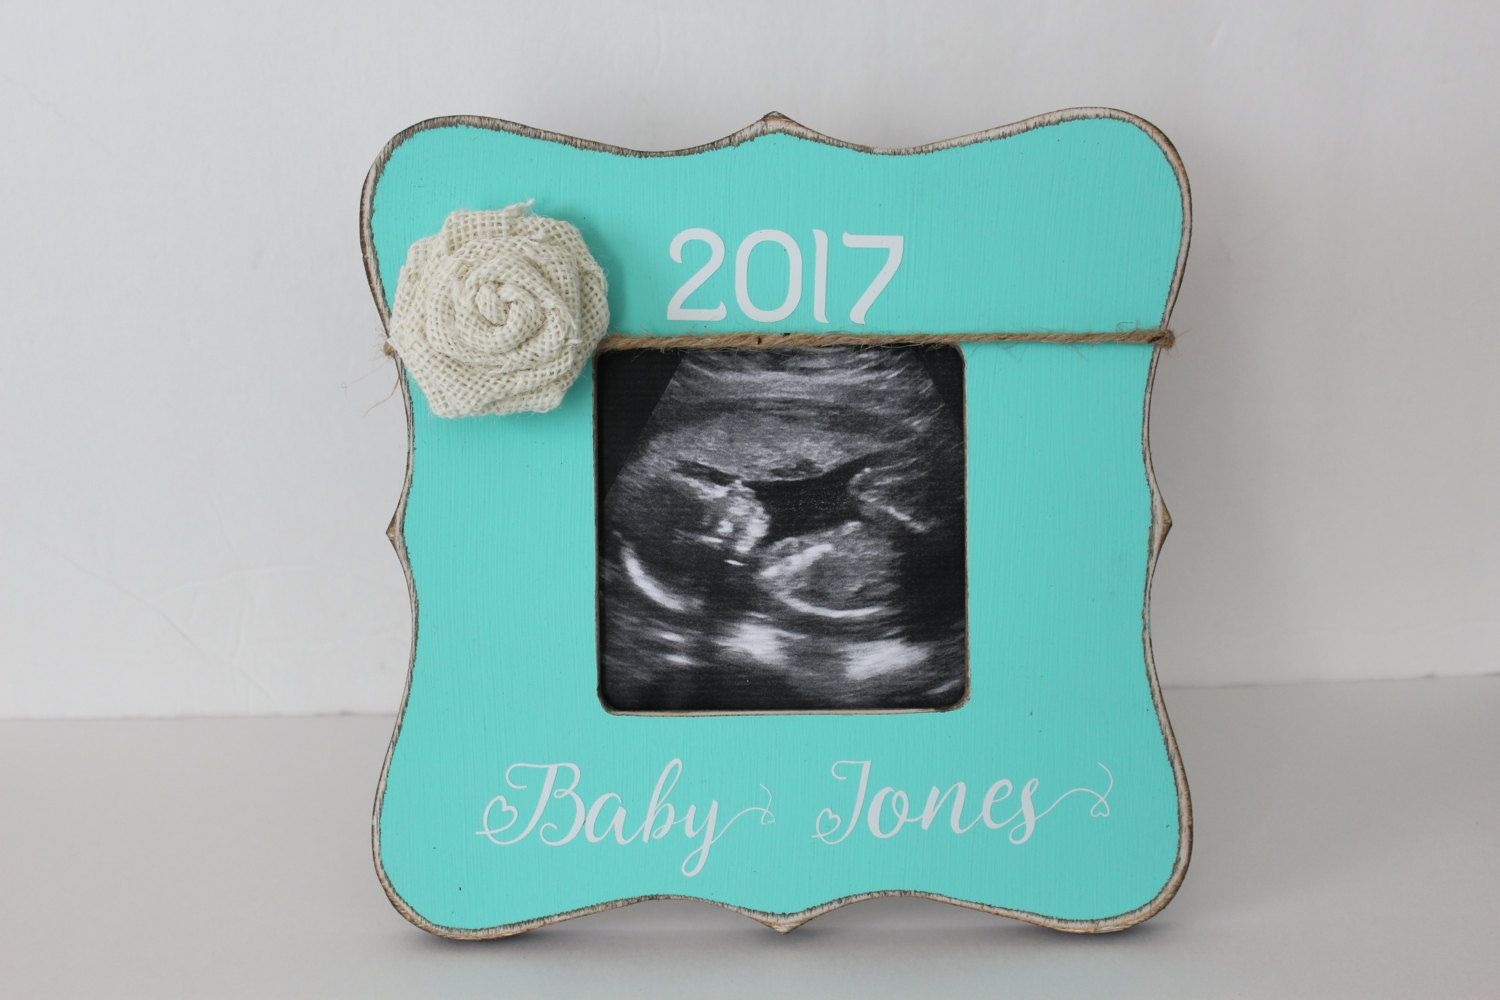 Ultrasound frame pregnancy announcement picture frame new baby ultrasound frame pregnancy announcement picture frame new baby photo frame by myrusticplace on etsy jeuxipadfo Image collections